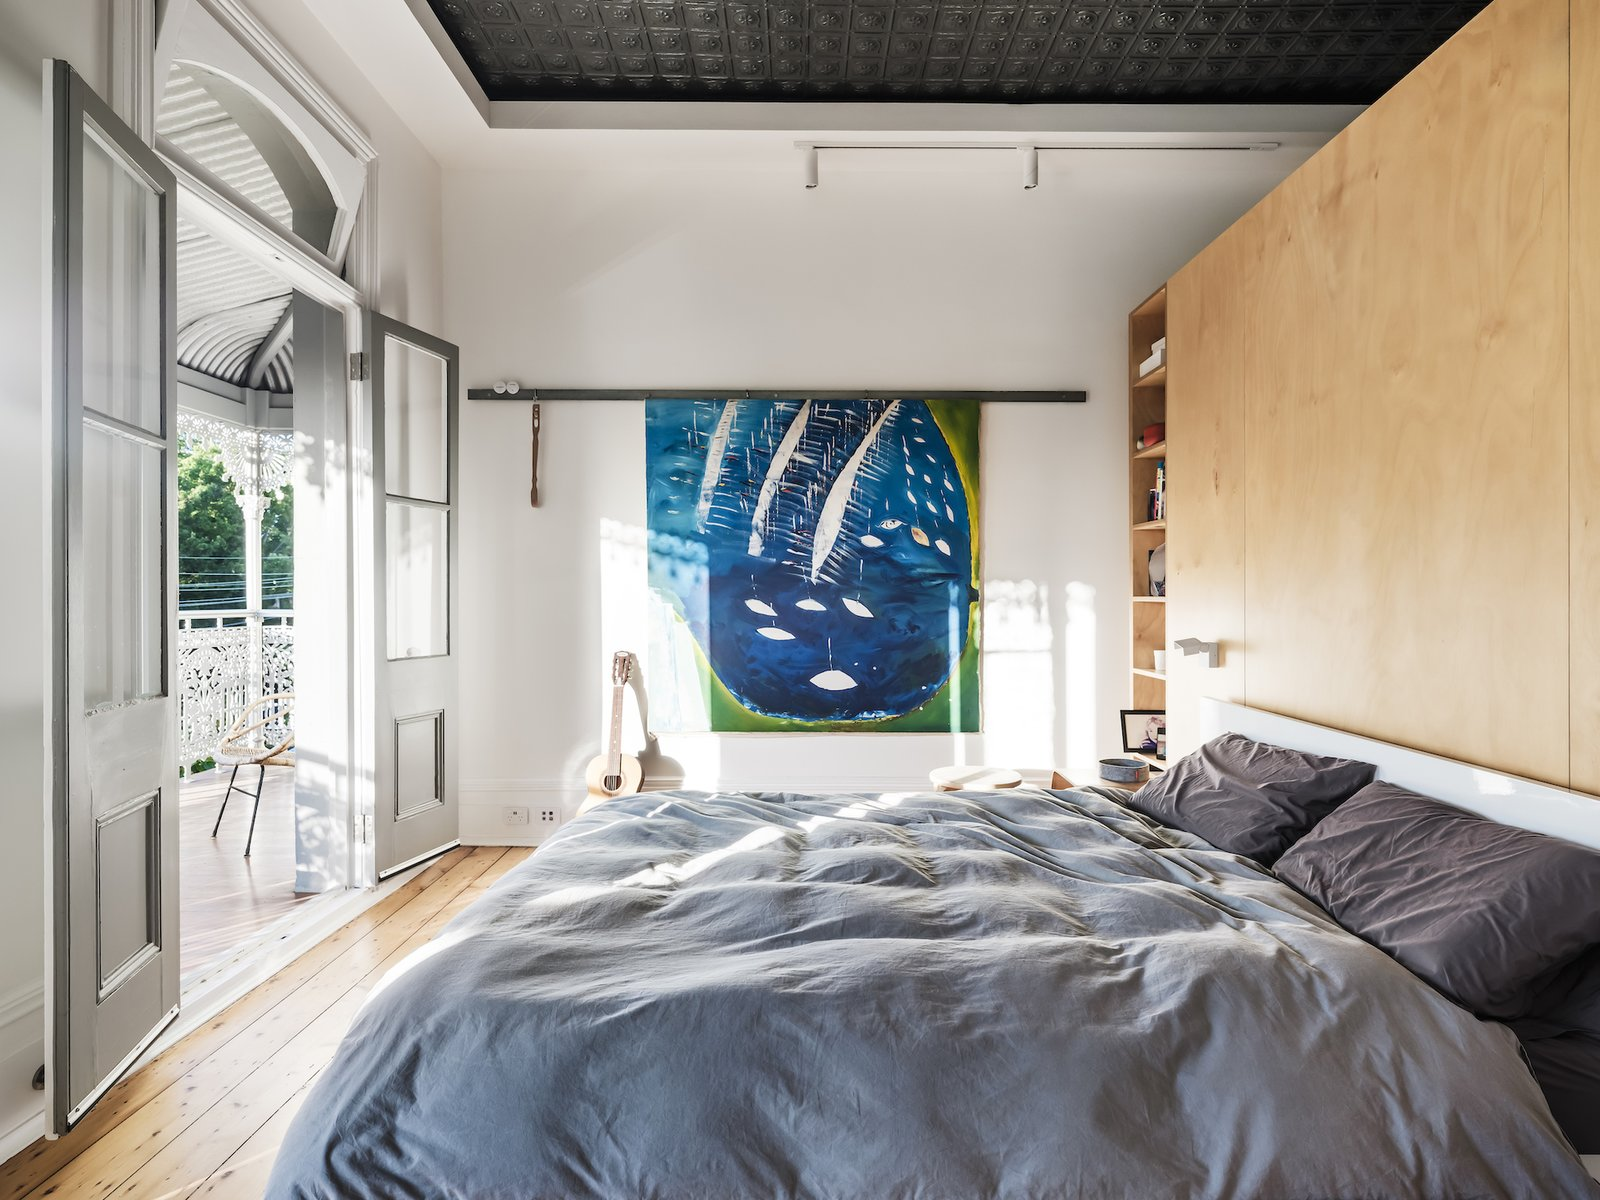 Bedroom of Courtyard House by COX.